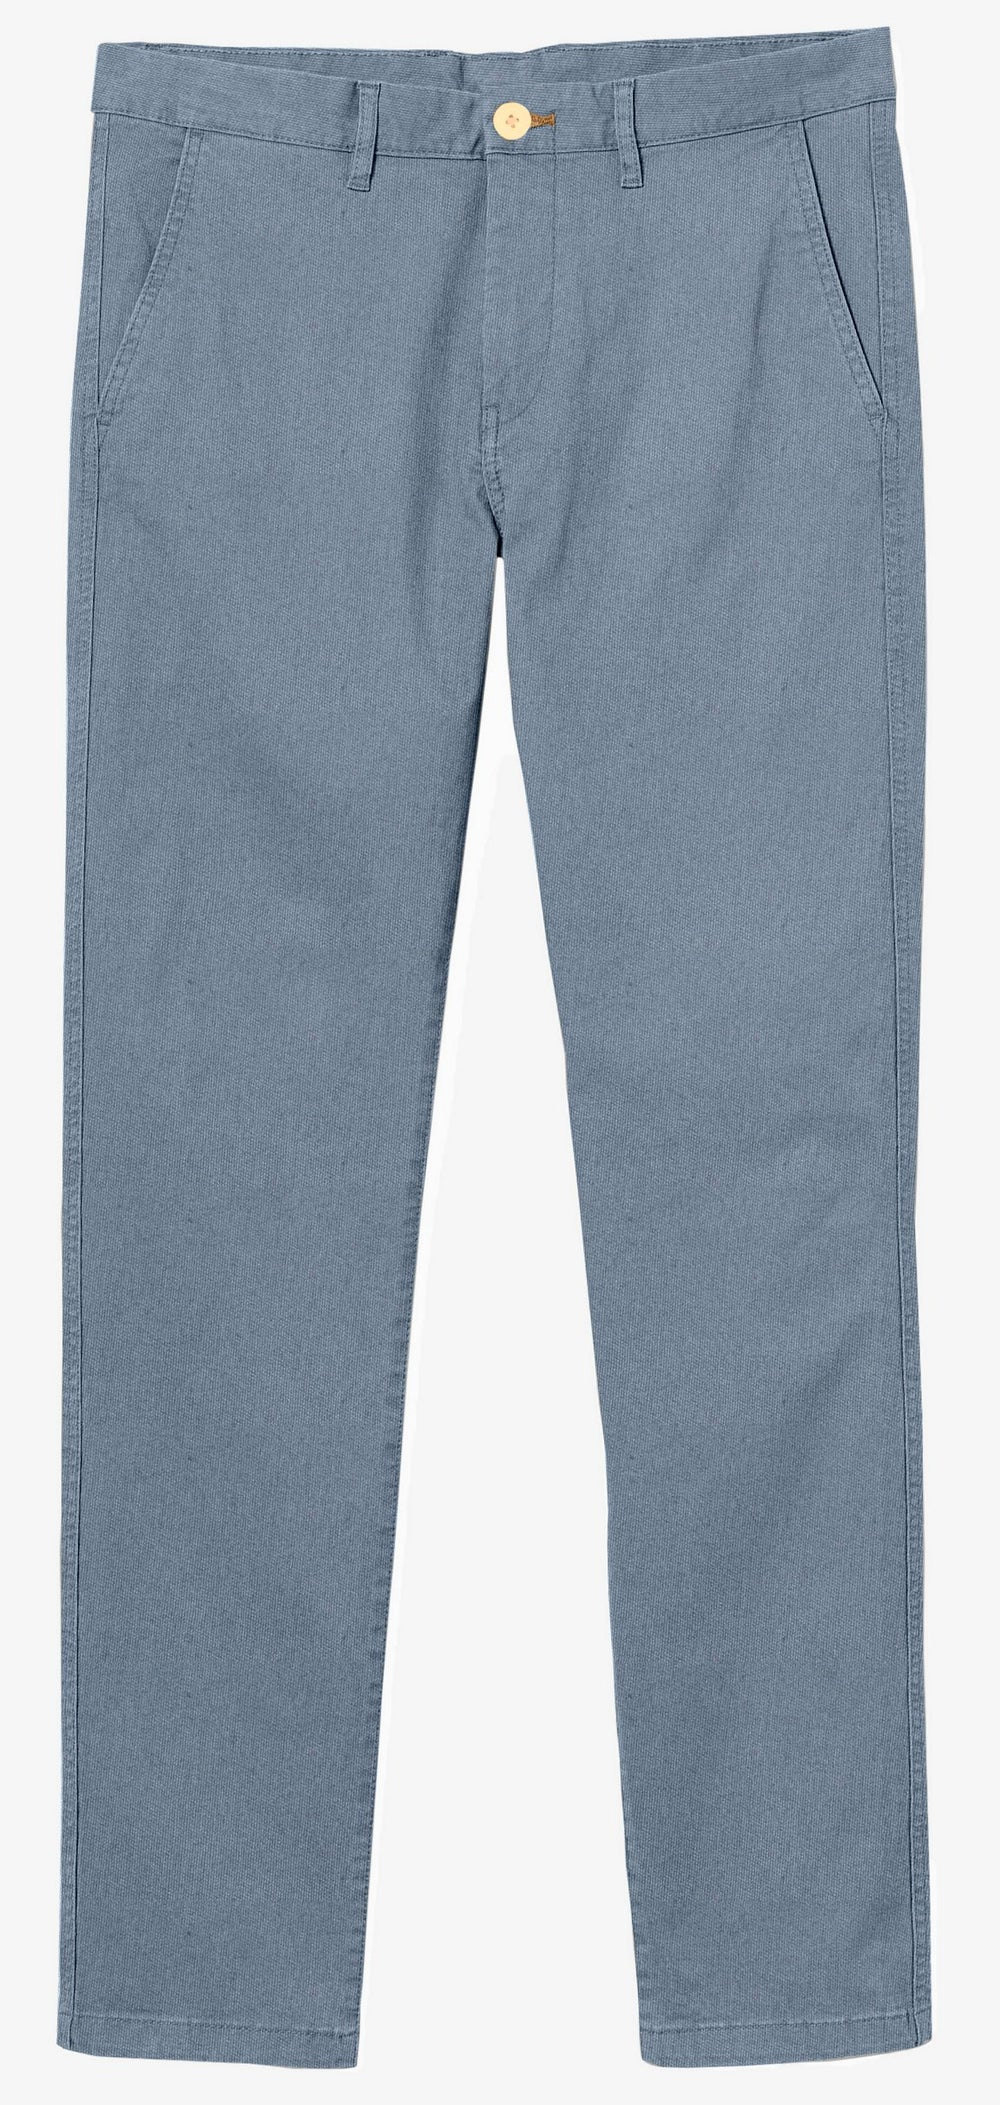 Cotton: Pigeon Blue Twill Chino